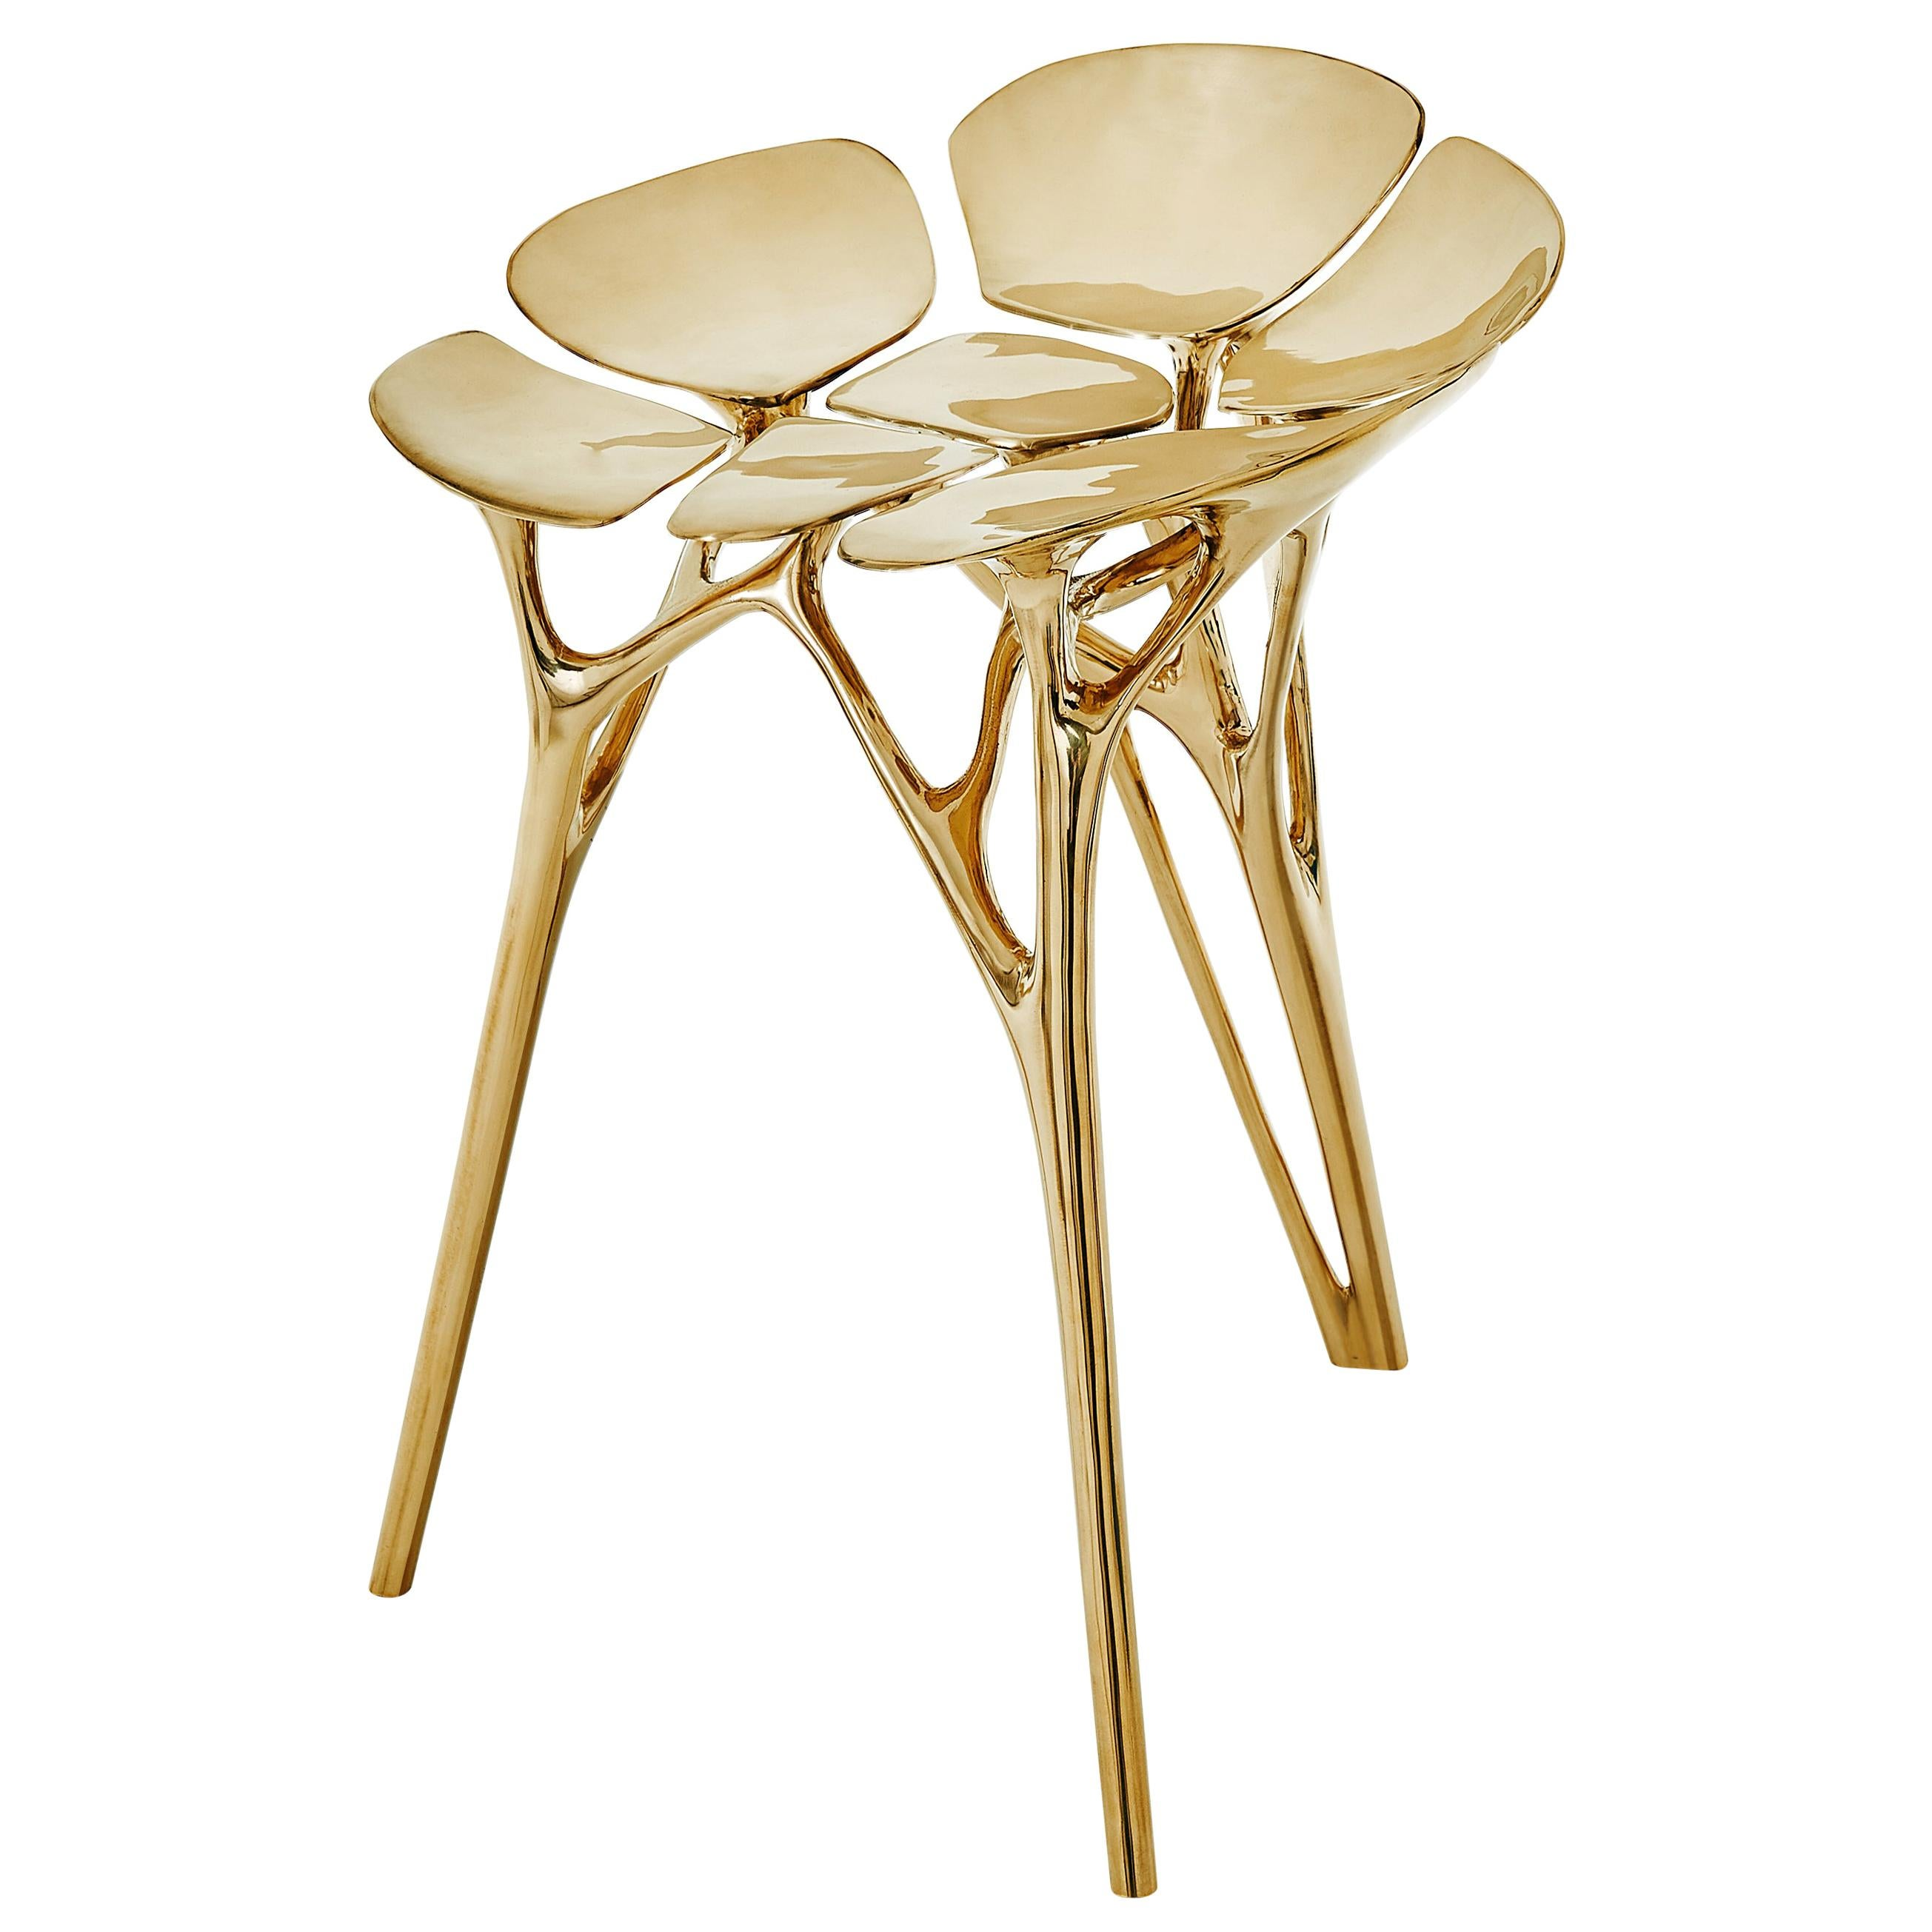 Superb Polished Brass Lotus Stool Chair In Gold Or Rose Gold Color Finish Onthecornerstone Fun Painted Chair Ideas Images Onthecornerstoneorg